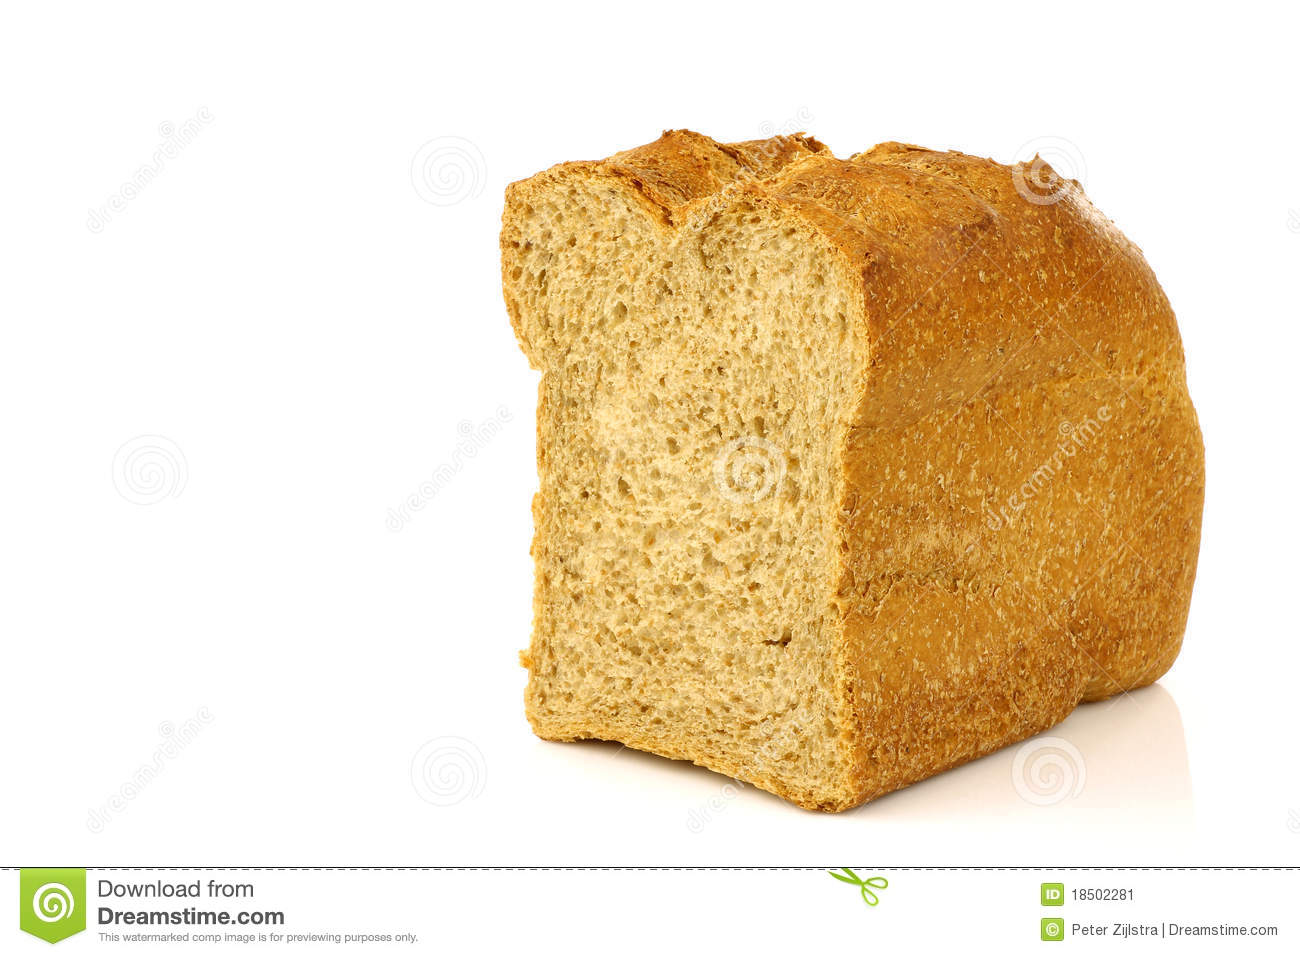 how to cut sub bread